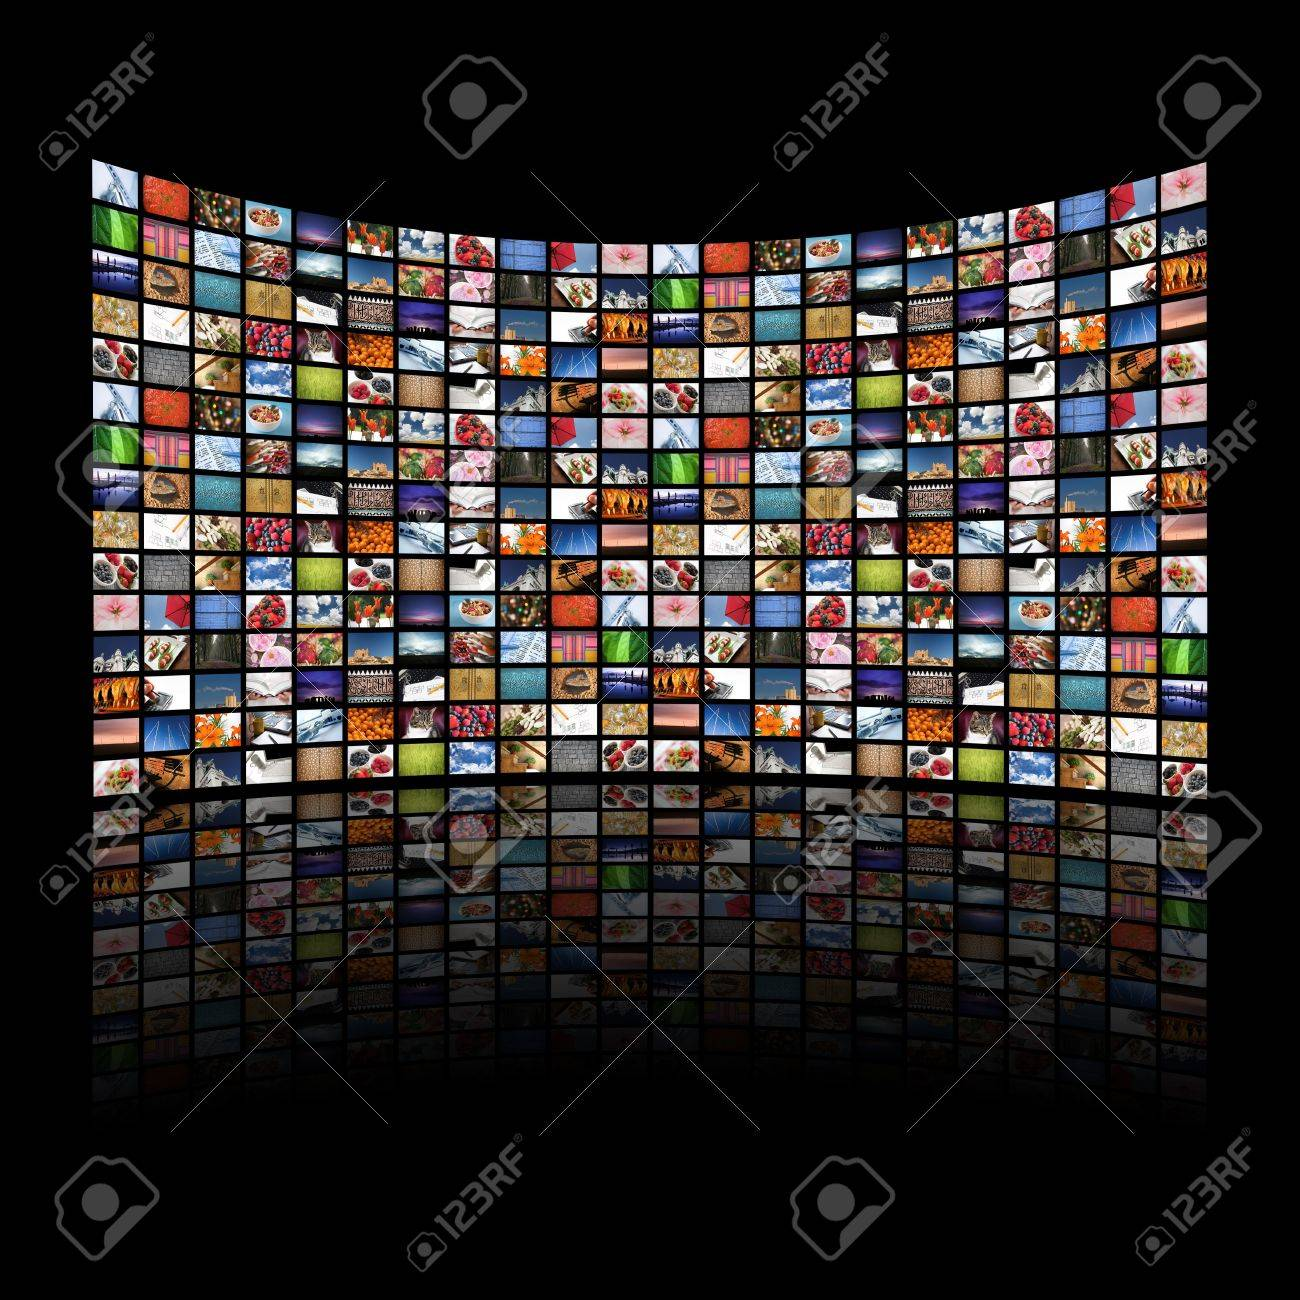 Multi media screens displaying images/information - All images � Daniel Gilbey Stock Photo - 3808293